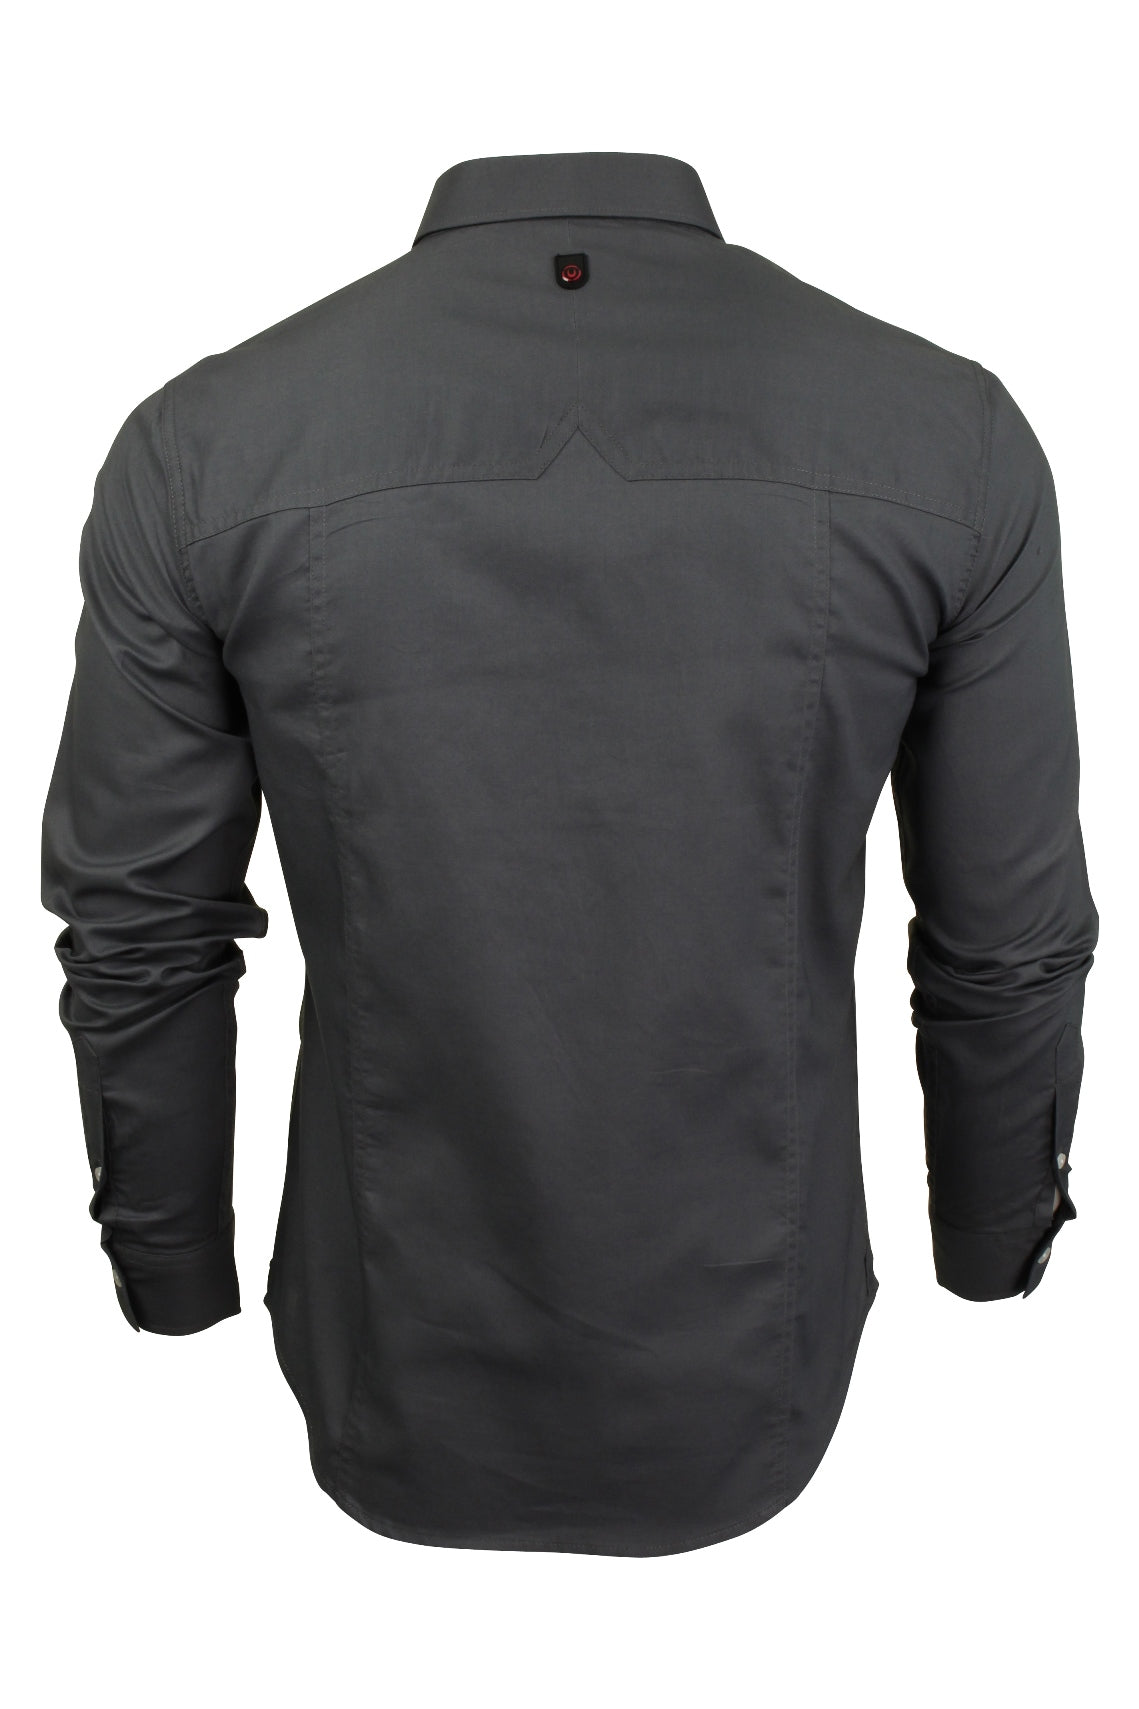 Mens Long Sleeved Shirt by Duck and Cover 'Birch'_03_Dc2G111535_Grey